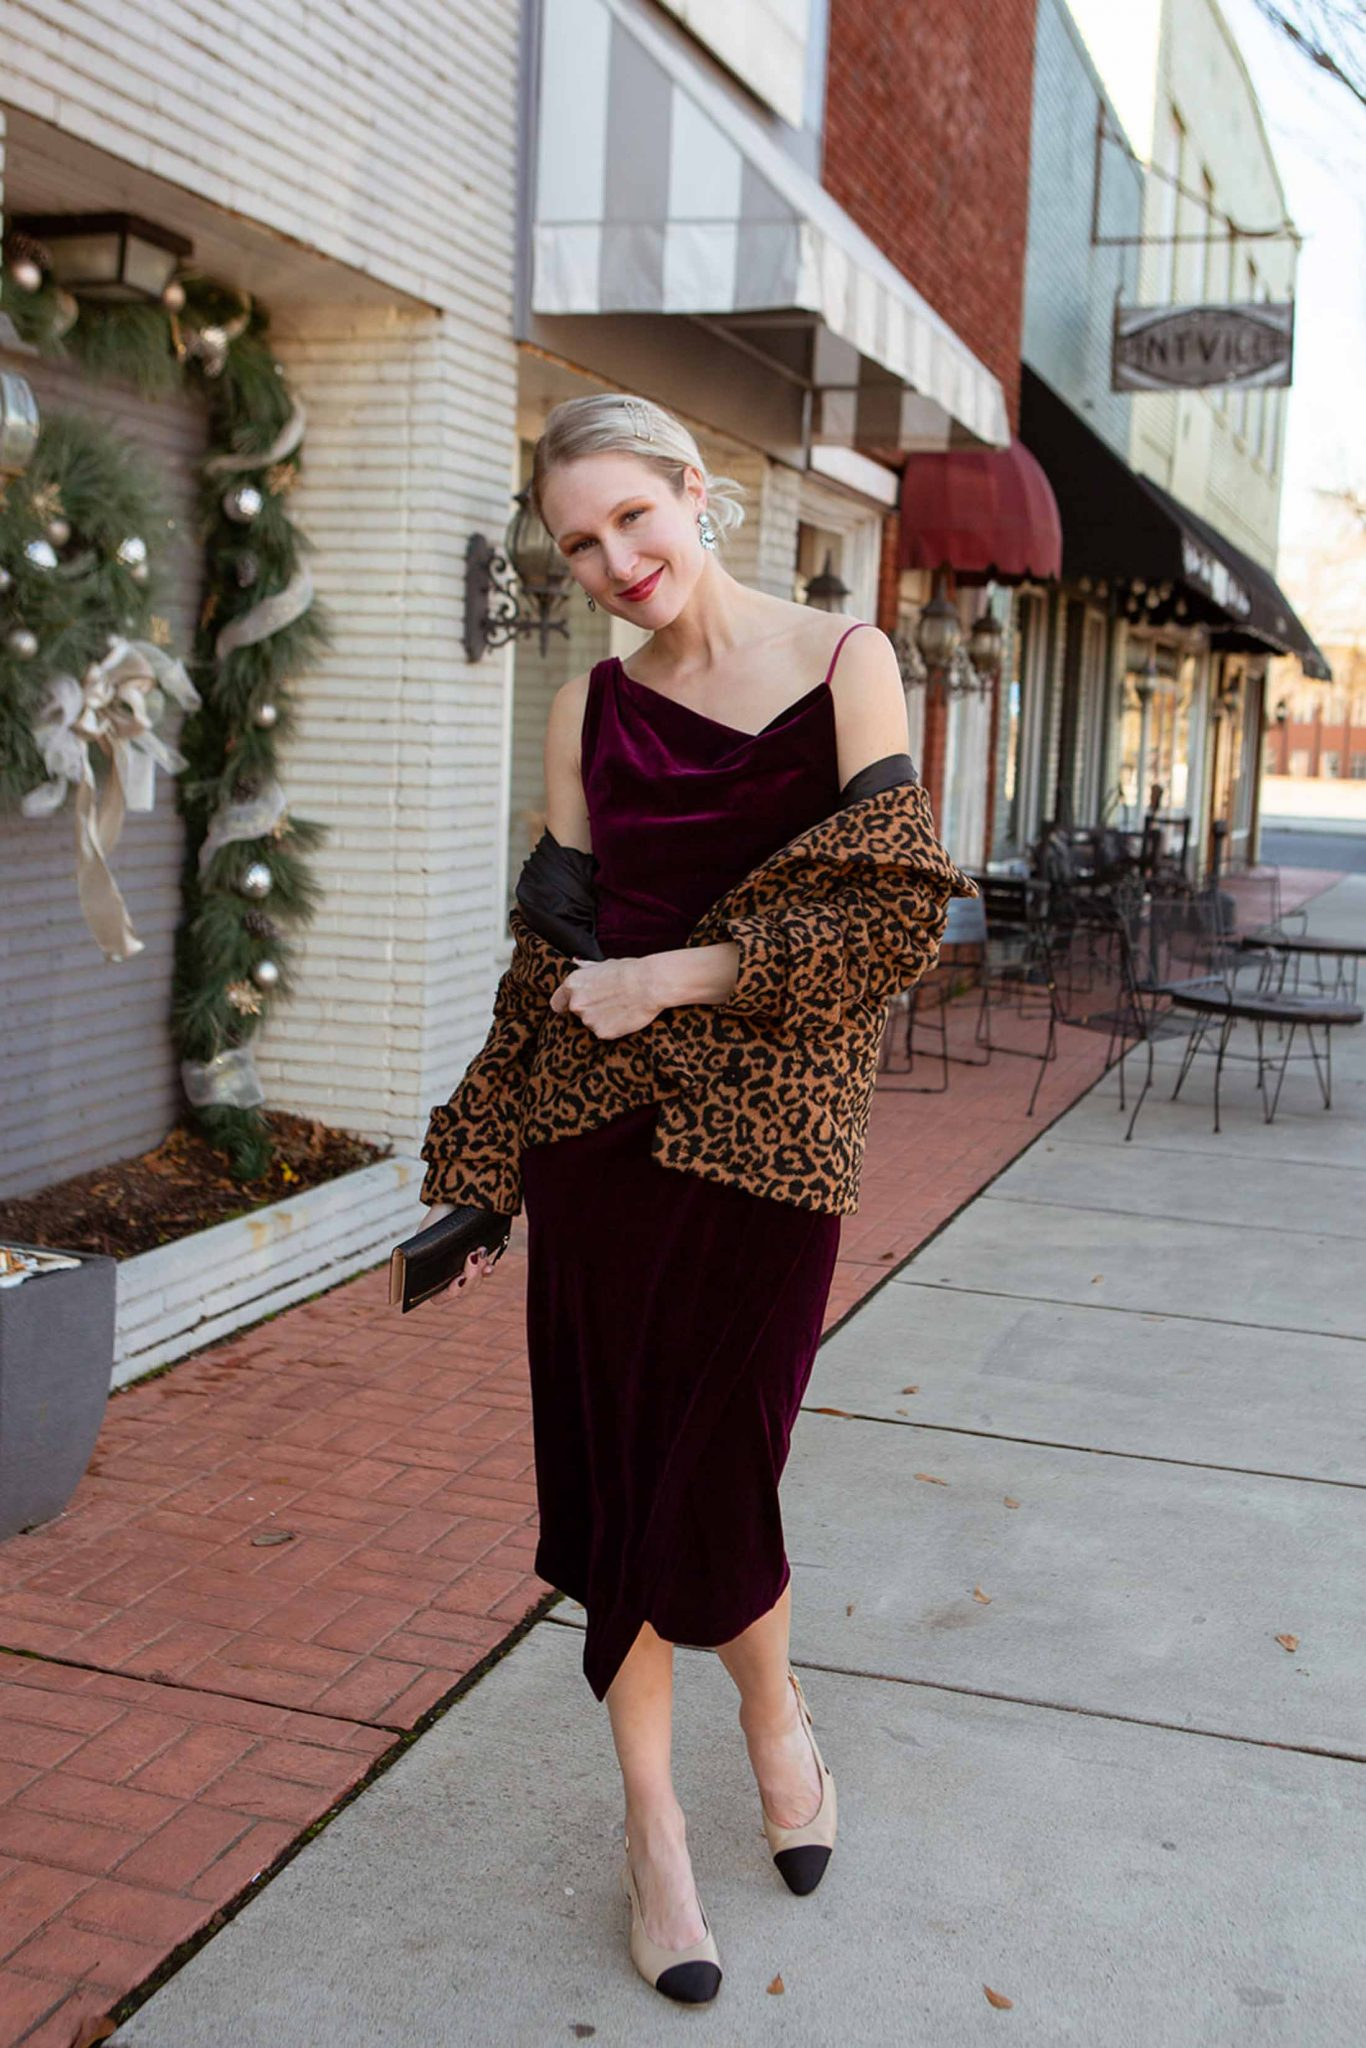 We found a beautifully draped, soft AF velvet dress & we're stying it 2 ways. Think ultra-chic w/ slingbacks & animal print OR edgy w/ Dr. Martens. YASSS.